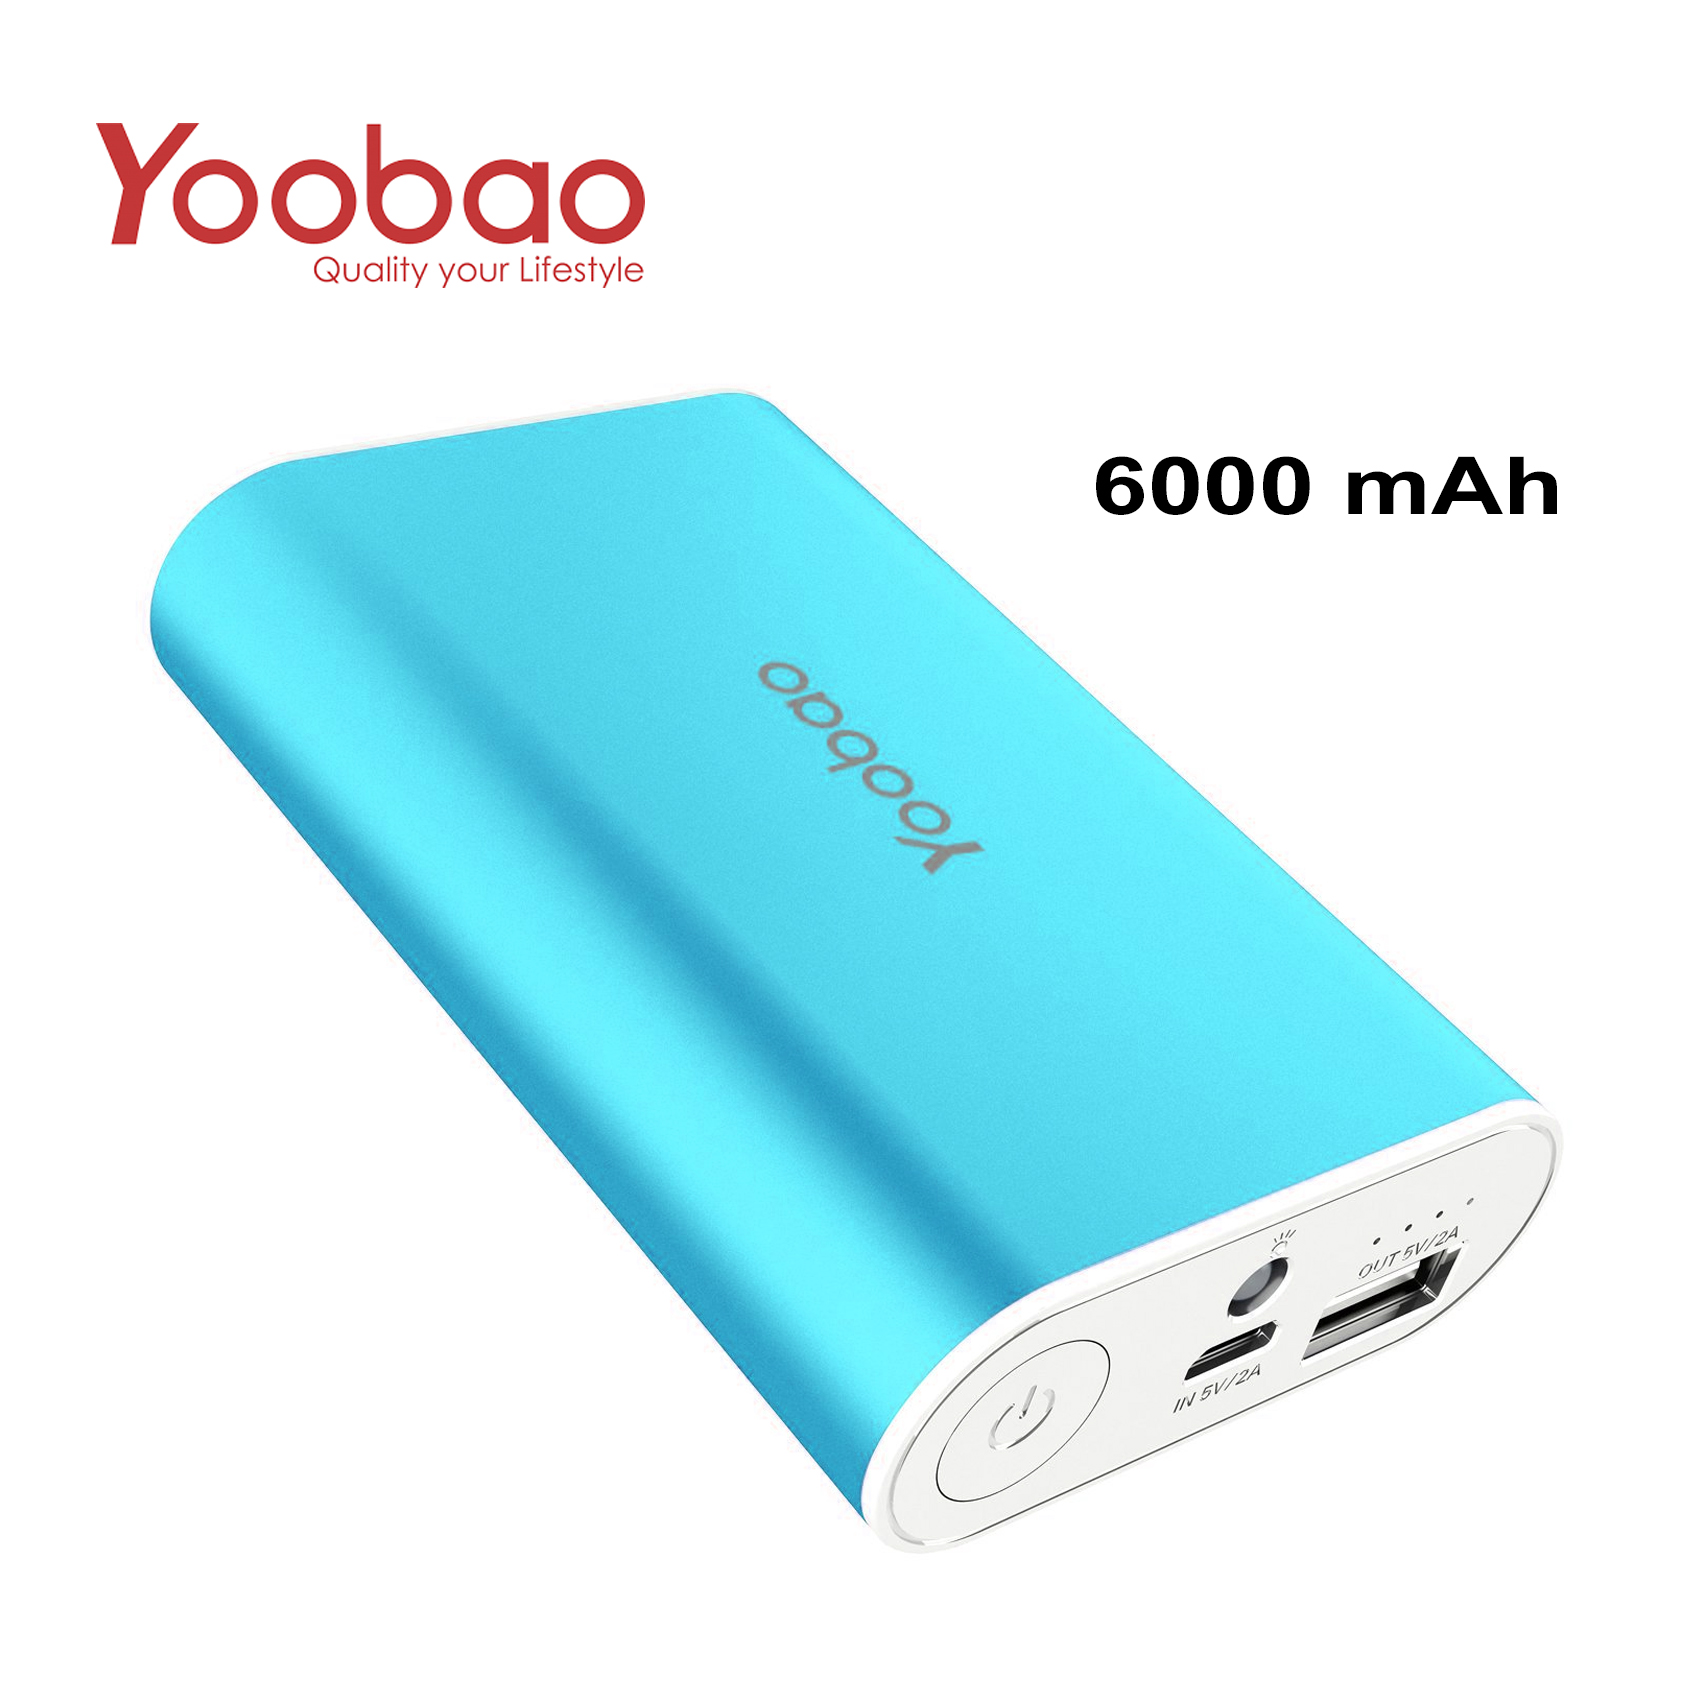 YOOBAO Intelligent Power Bank S3 6000mAh Portable Charger - Blue